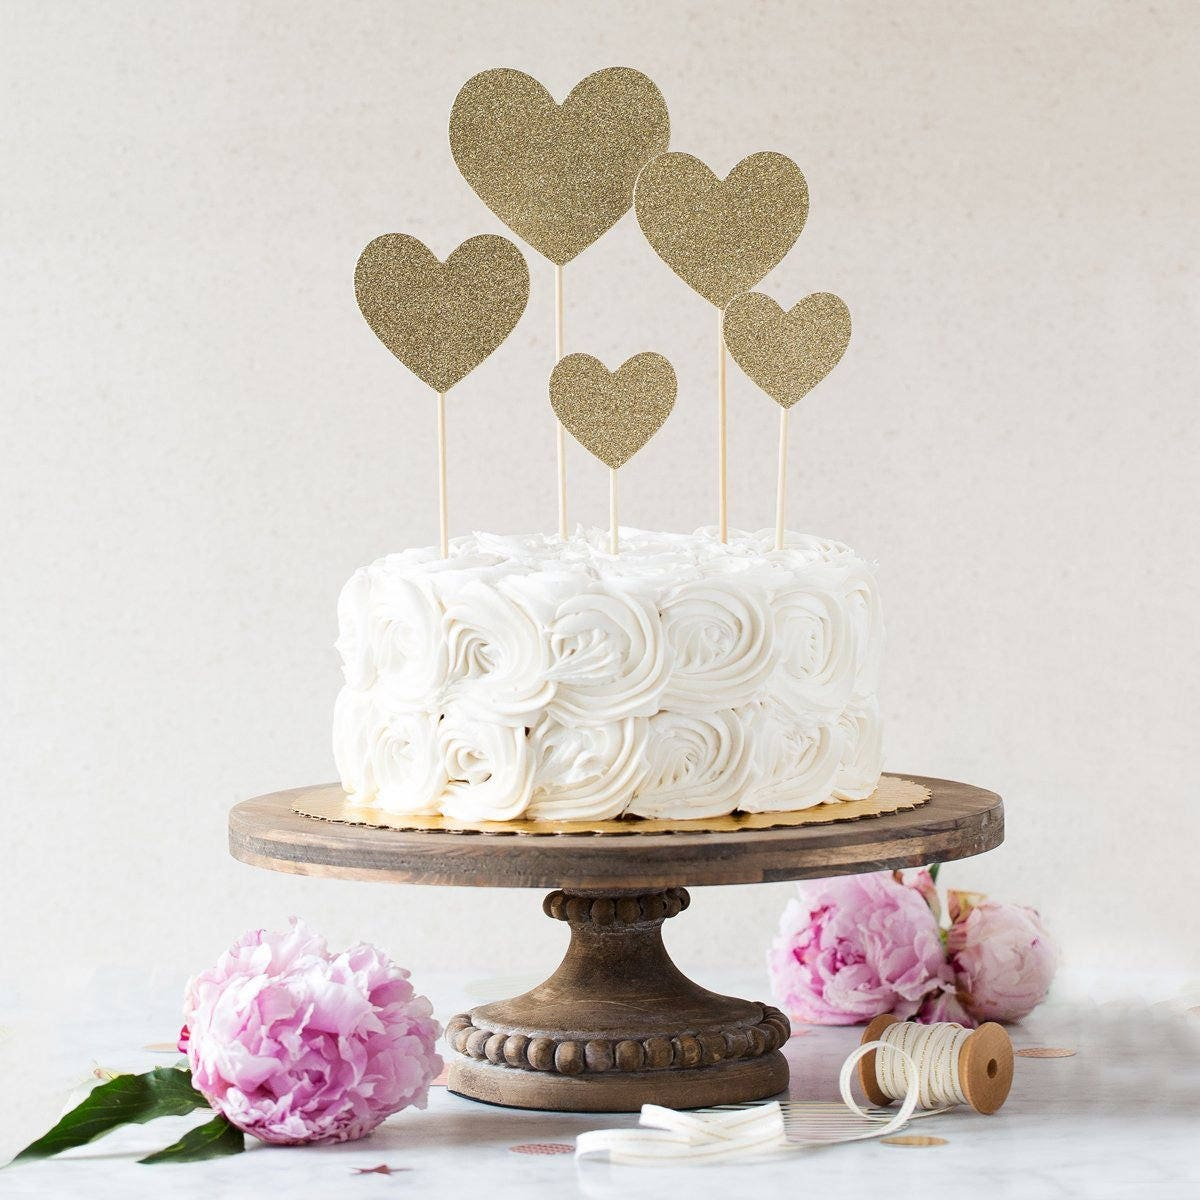 Gold Wedding Cake Decorations: Glitter Gold Heart Cake Picks -Wedding Cake Decorations